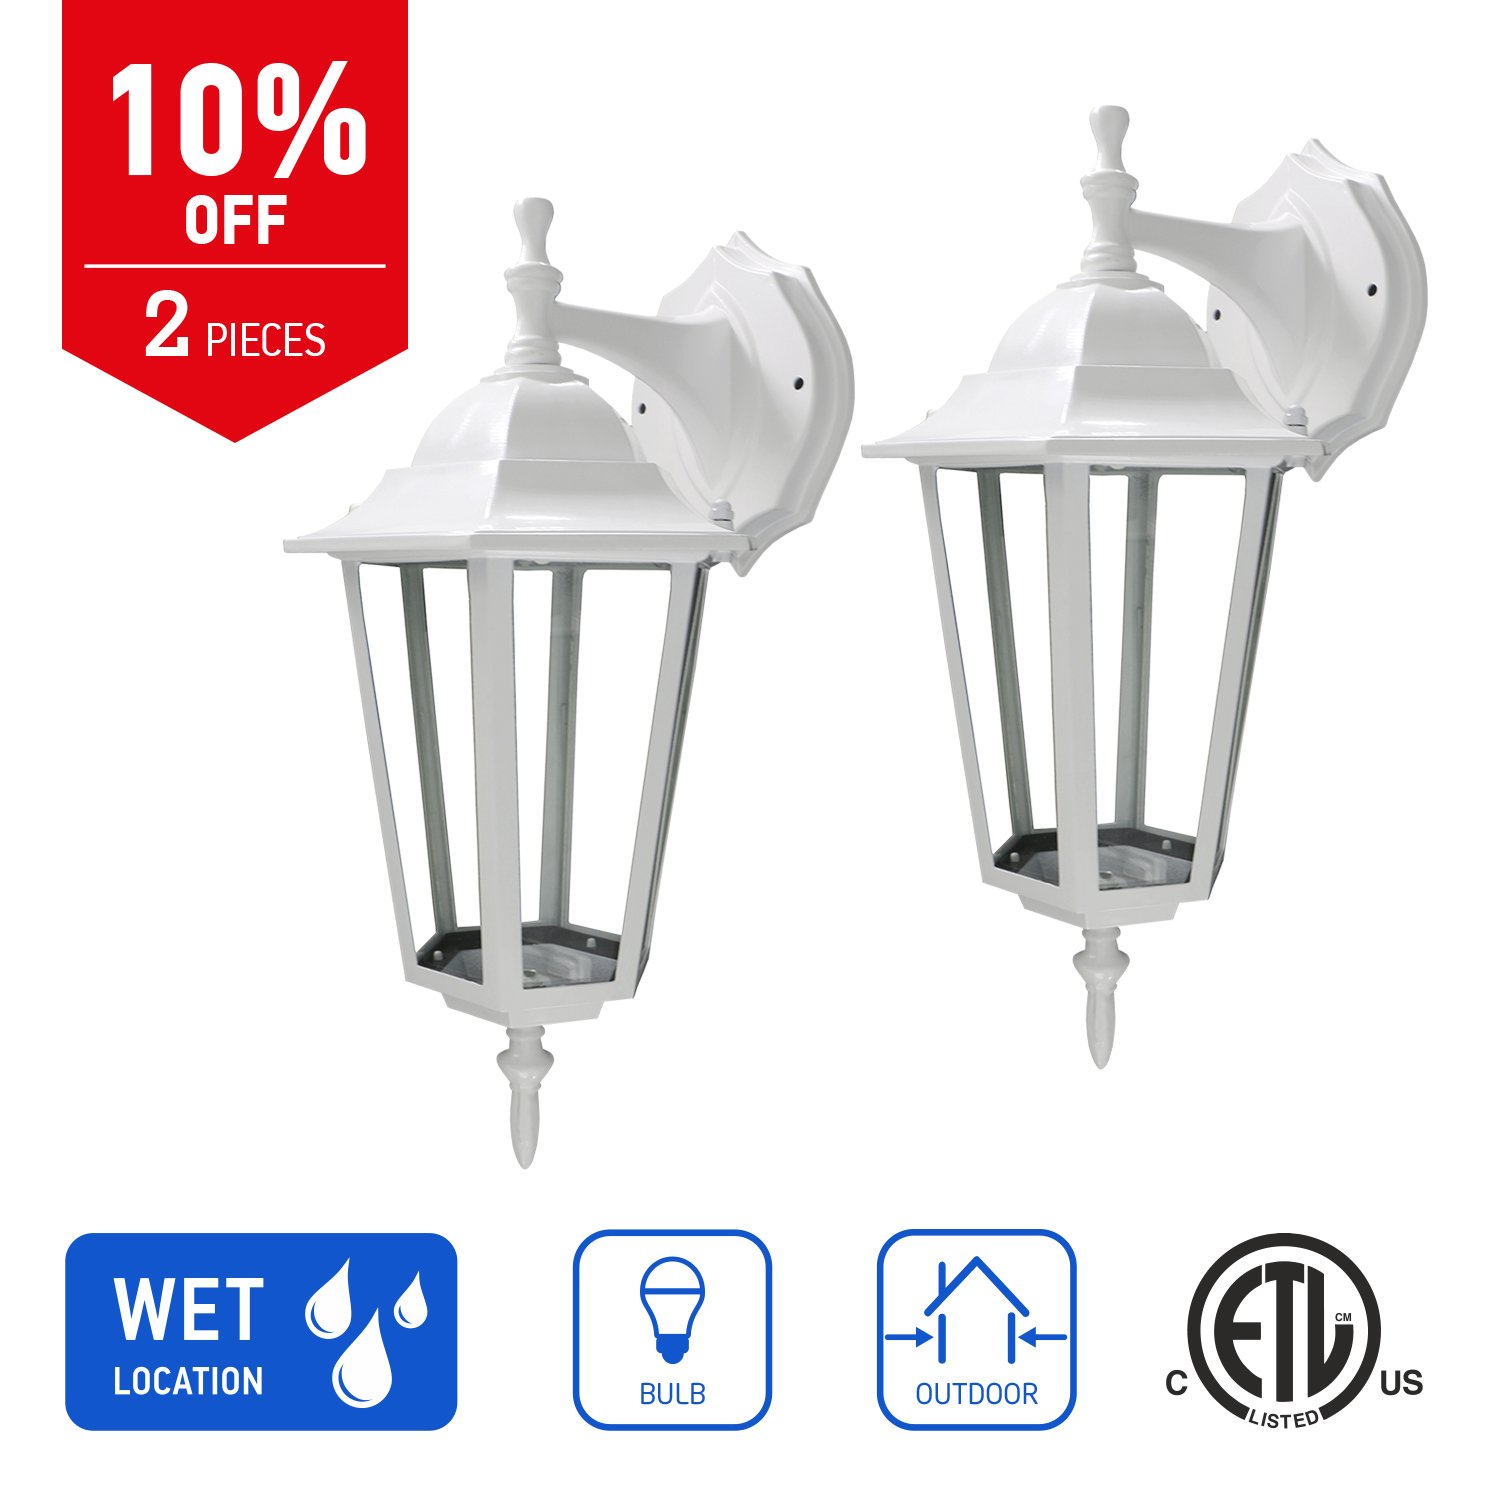 IN HOME 1-Light Outdoor Exterior Wall Down Lantern, Traditional Porch Patio Lighting Fixture L01 with One E26 Base, Water-Proof, White Cast Aluminum Housing, Clear Glass Panels, (2 Pack) ETL Listed